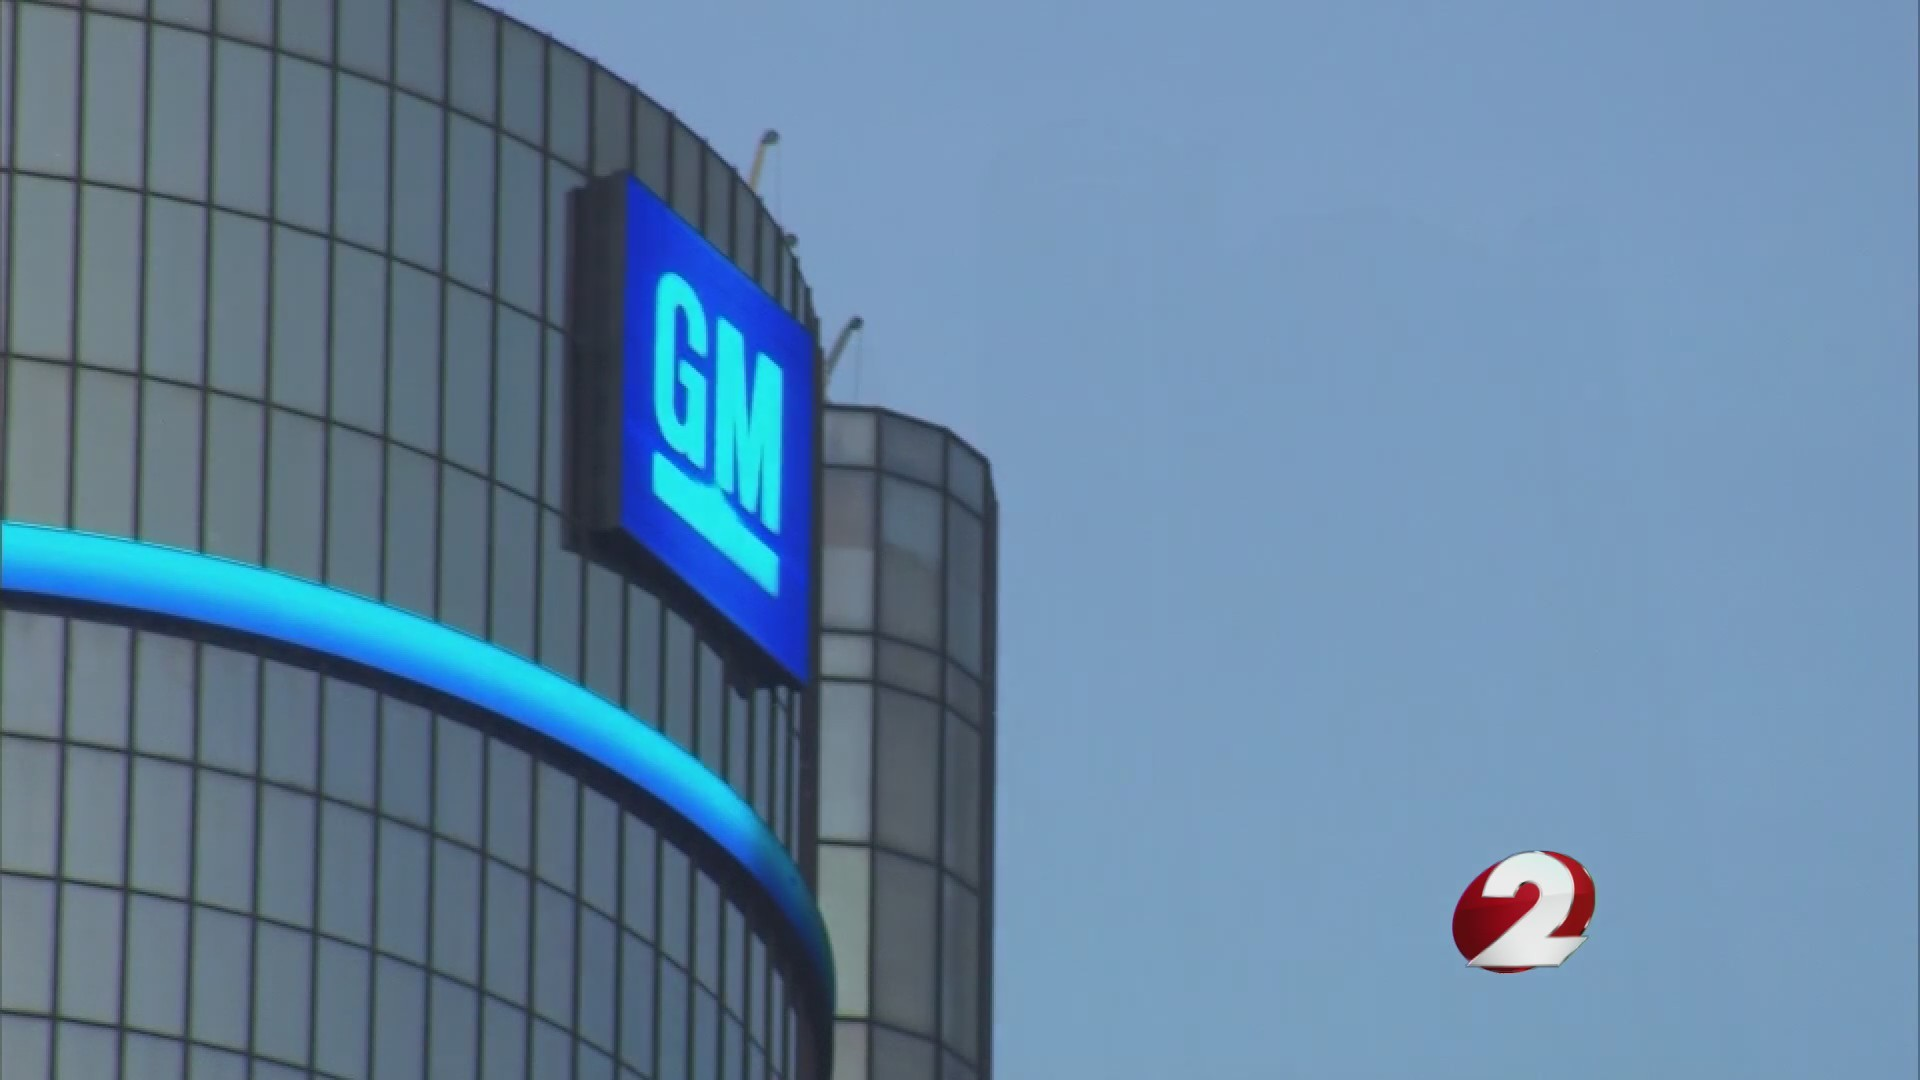 GM to invest $700 million bringing jobs to Moraine